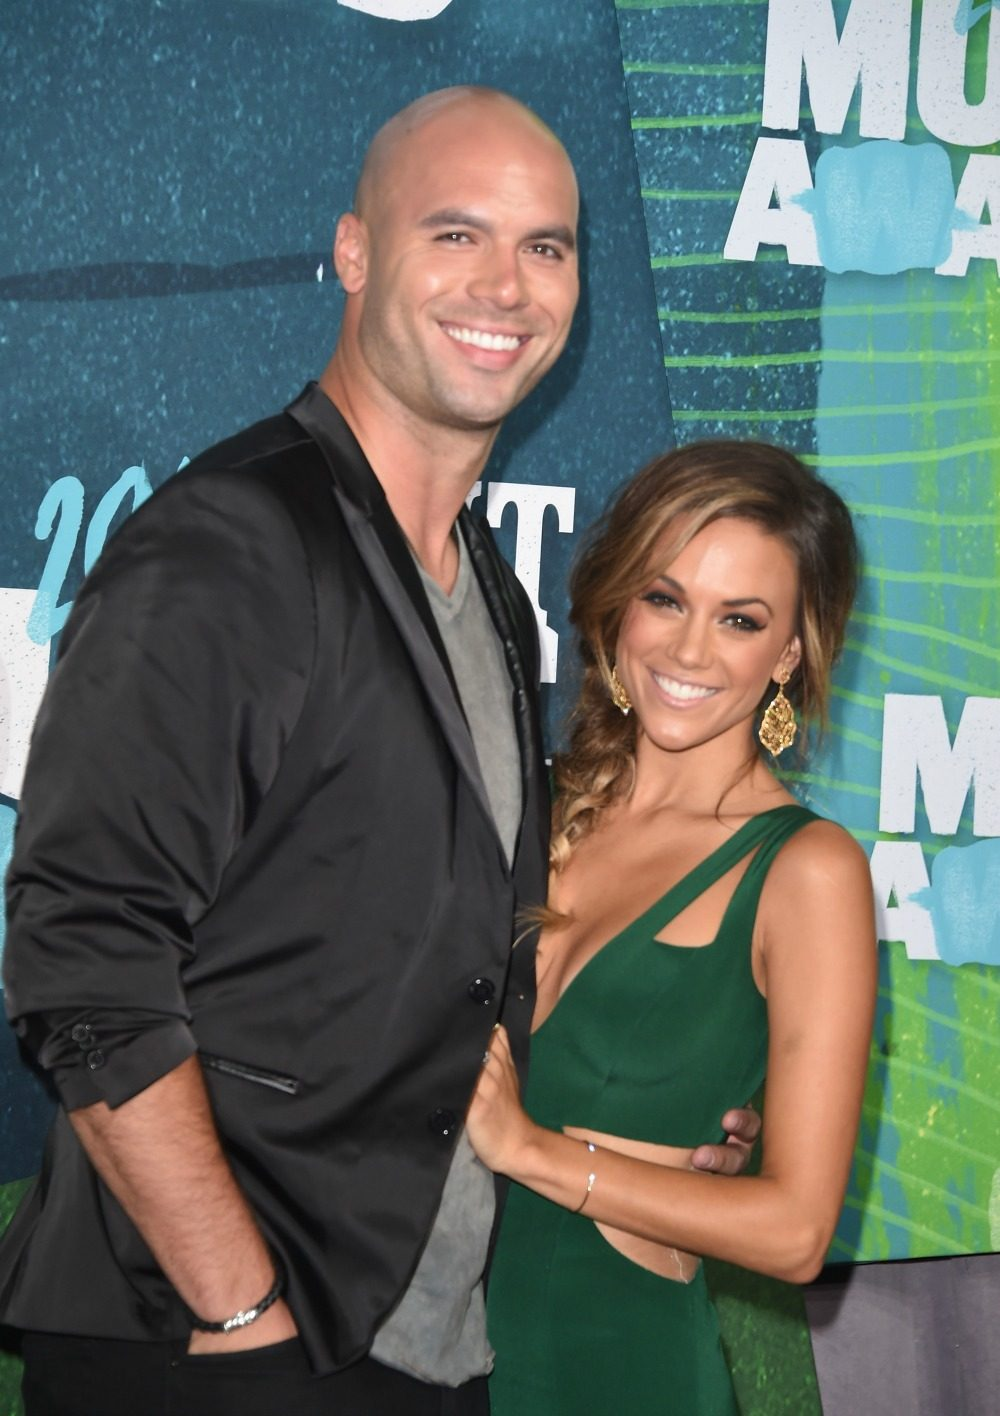 Jana Kramer welcomes a new addition to her family!